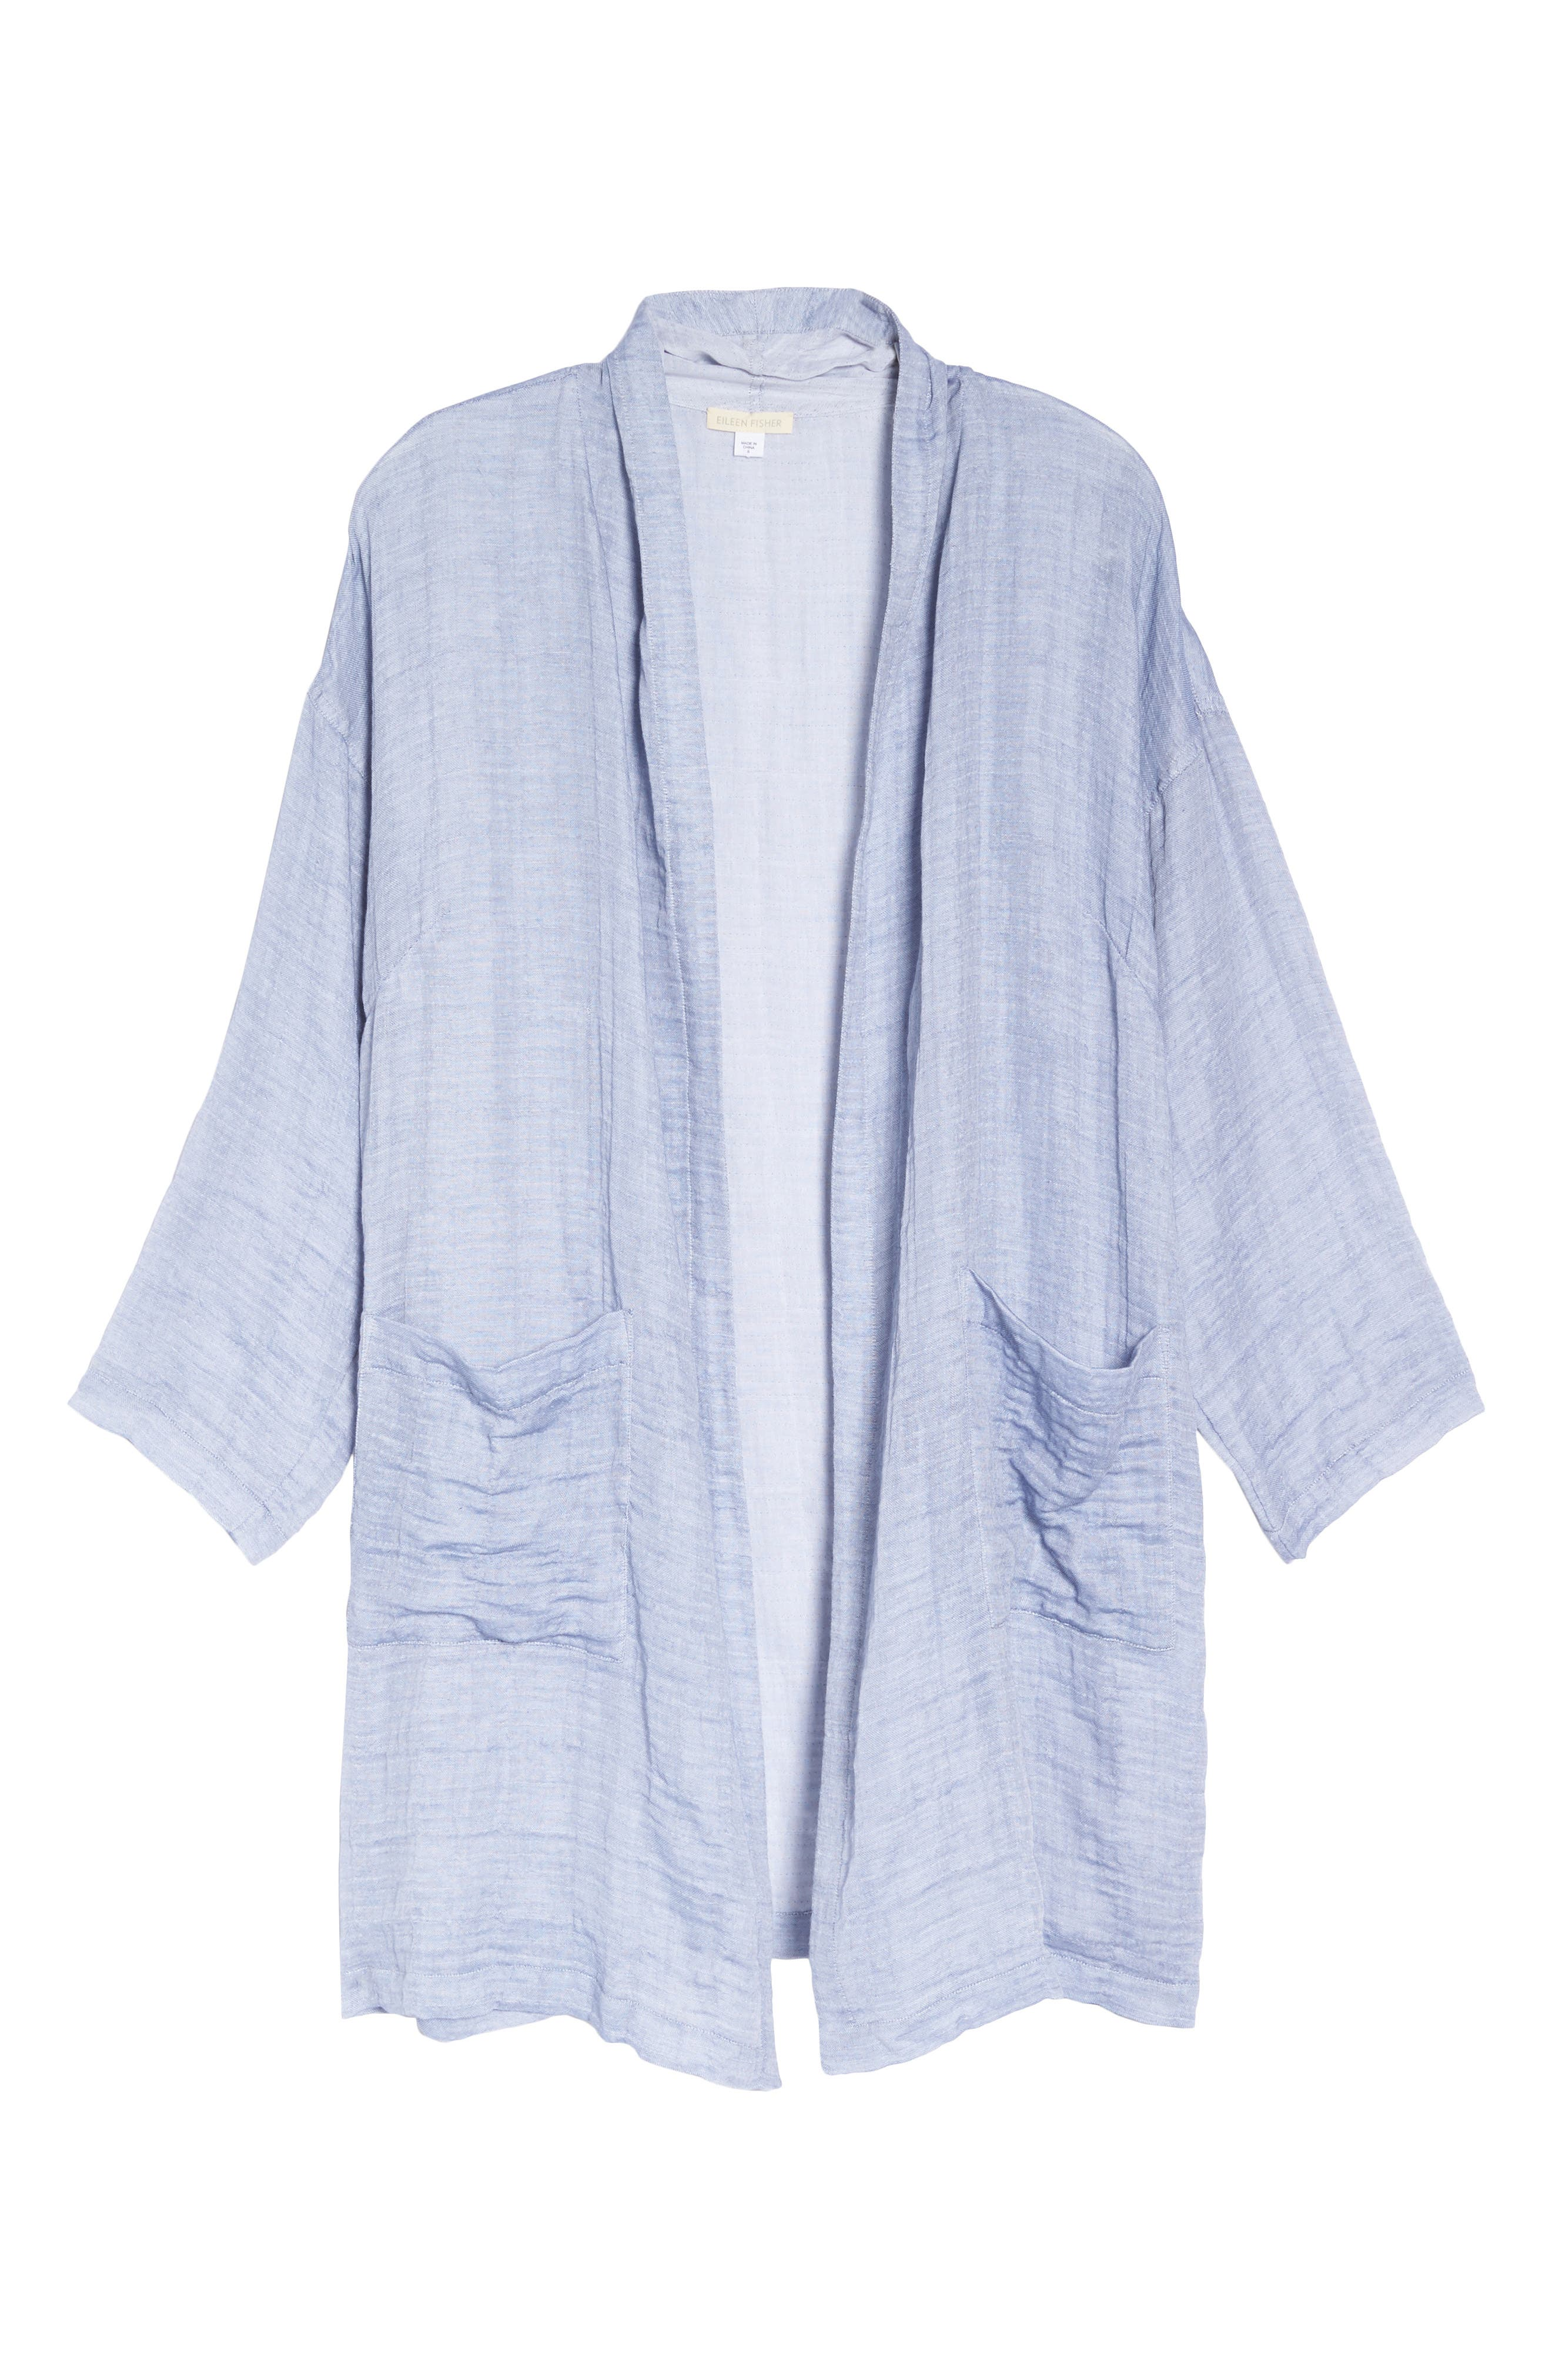 Kimono Jacket,                             Alternate thumbnail 7, color,                             Chambray